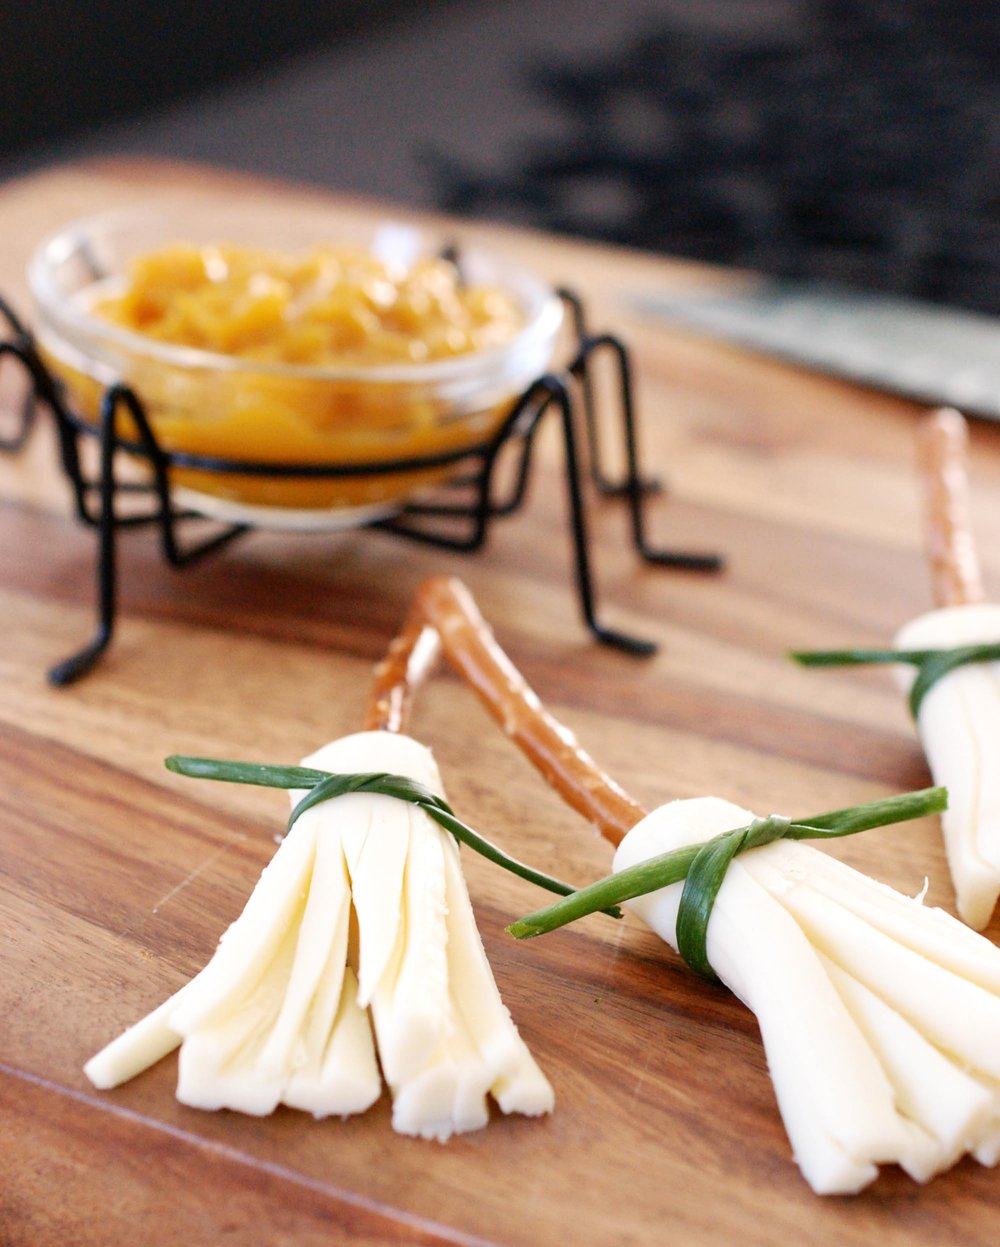 Witches Cheese Brooms With Hot Banana Pepper Mustard Recipe